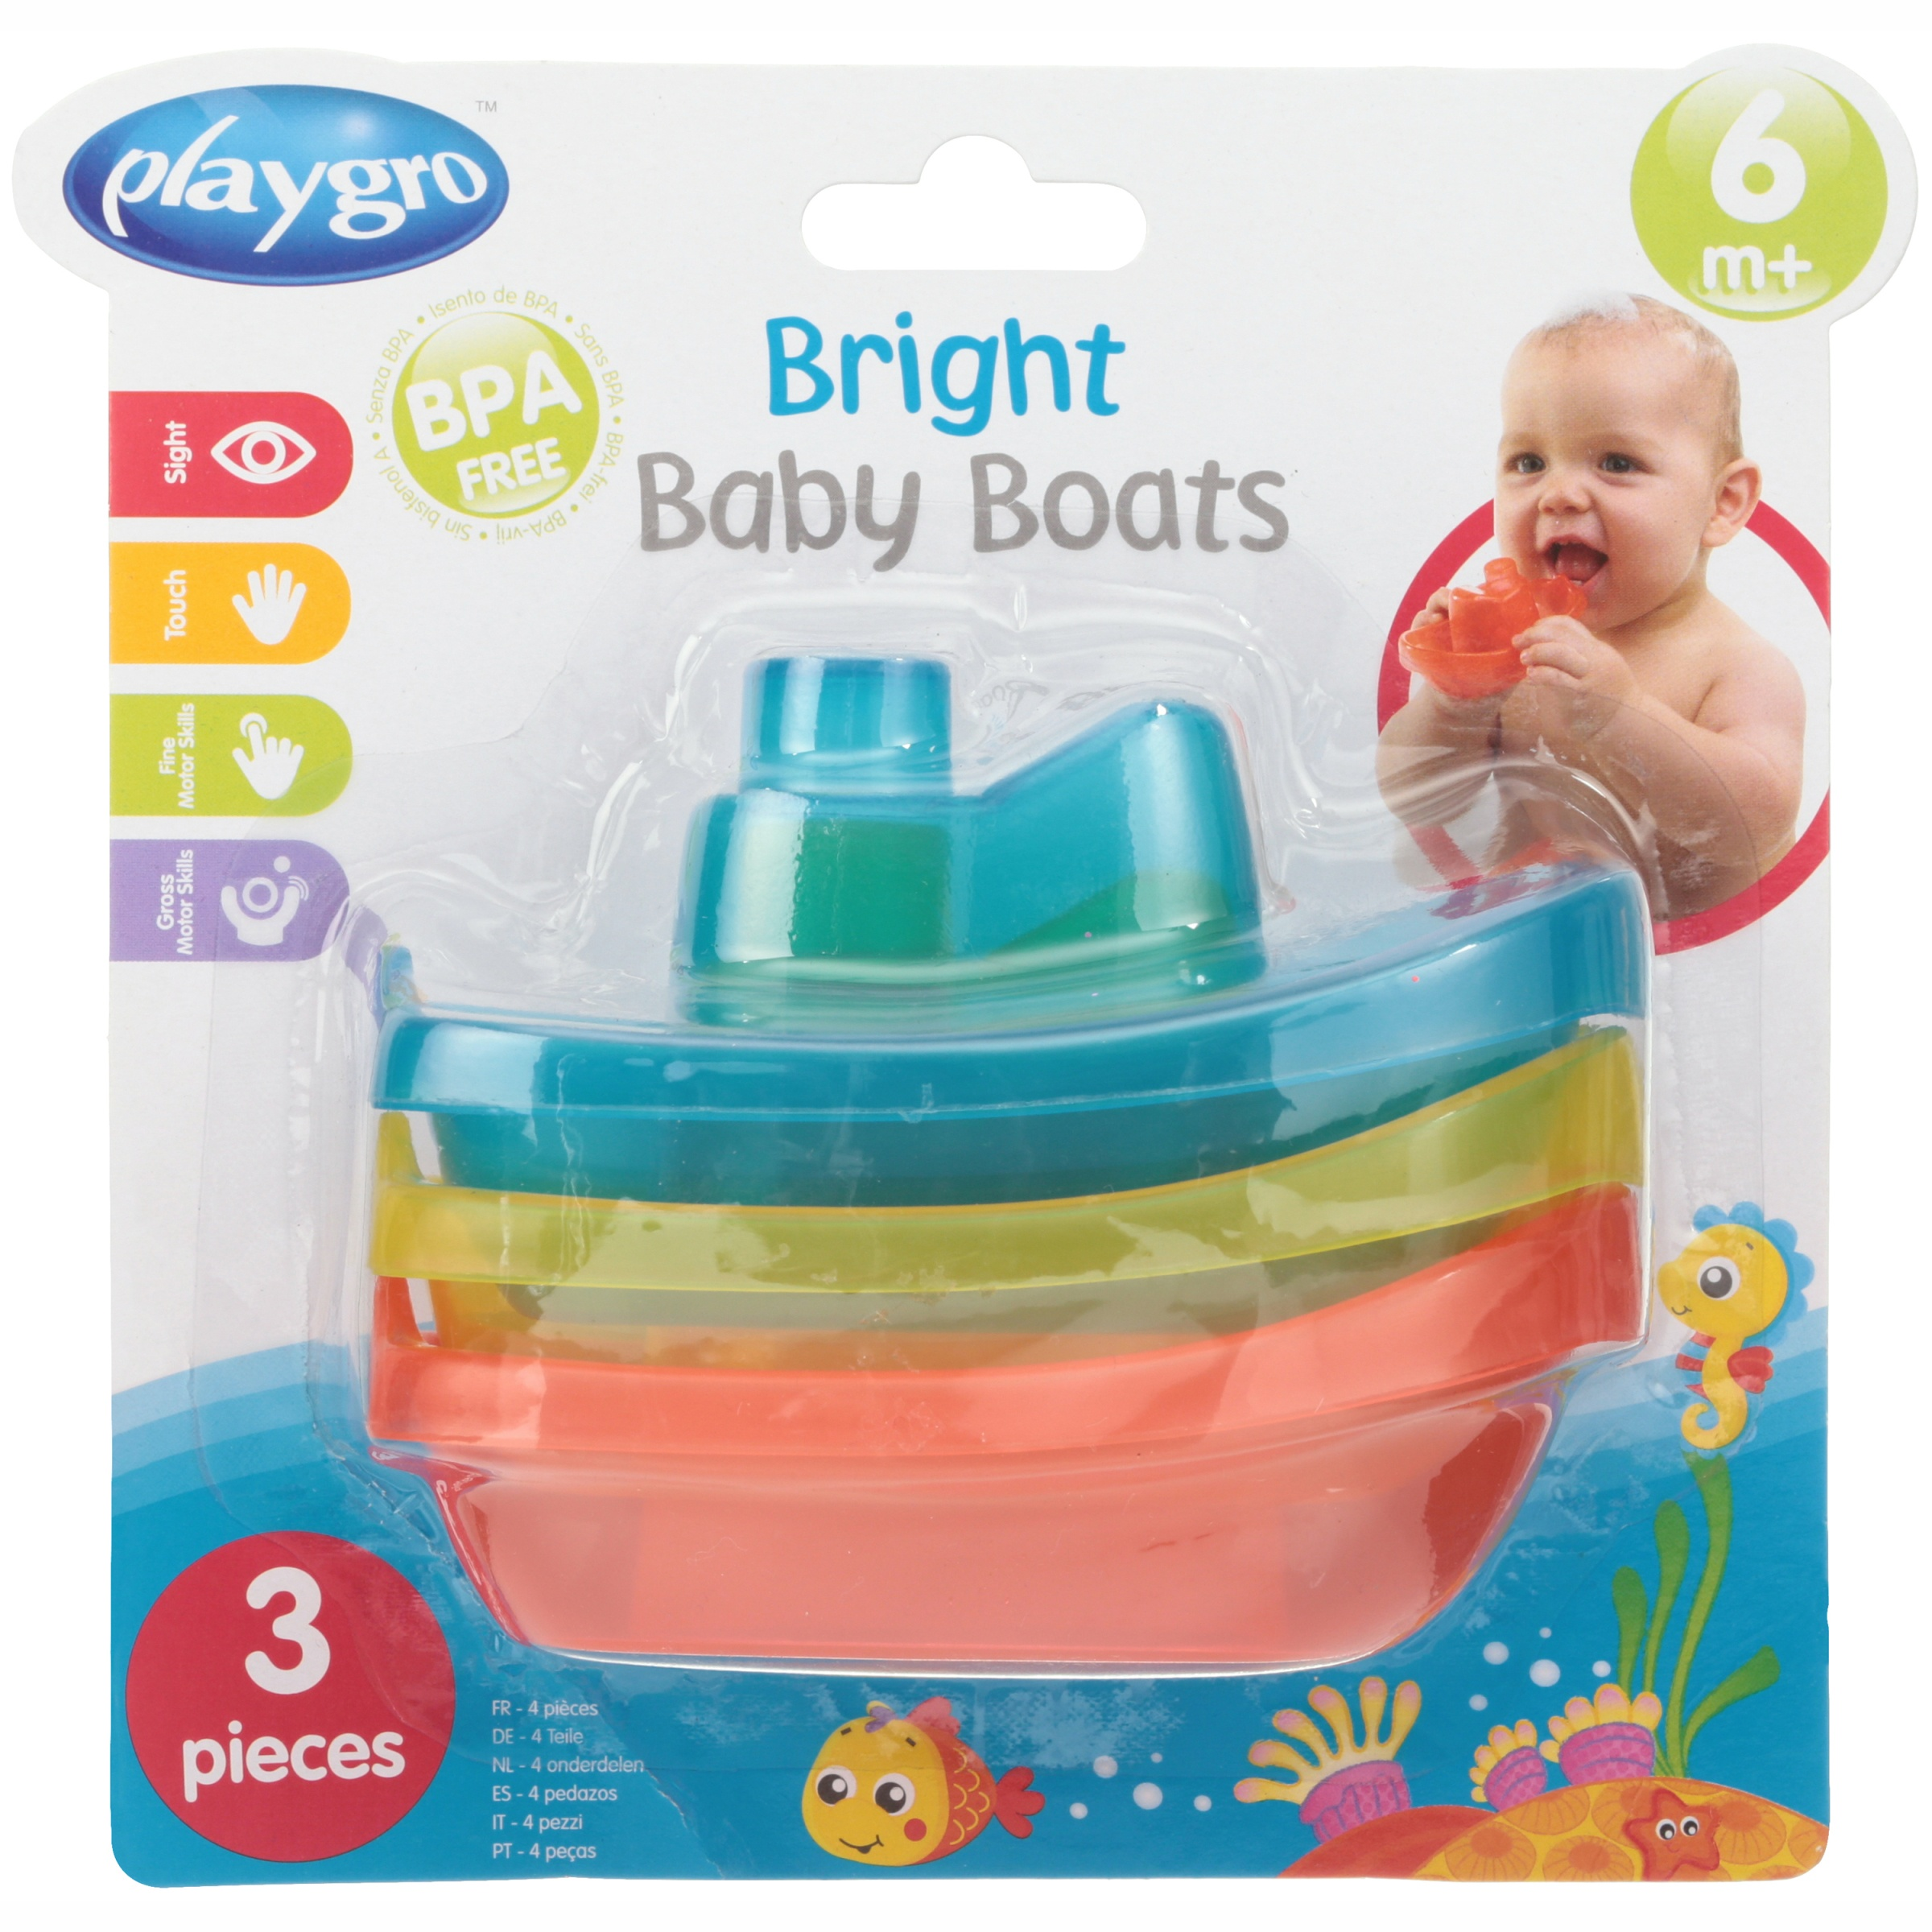 Great Start for a World of Learning Playgro is Encouraging Imagination with STEM//STEM for a Bright Future Playgro Bright Baby Boats for Baby Infant Toddler Children 0183454 GN